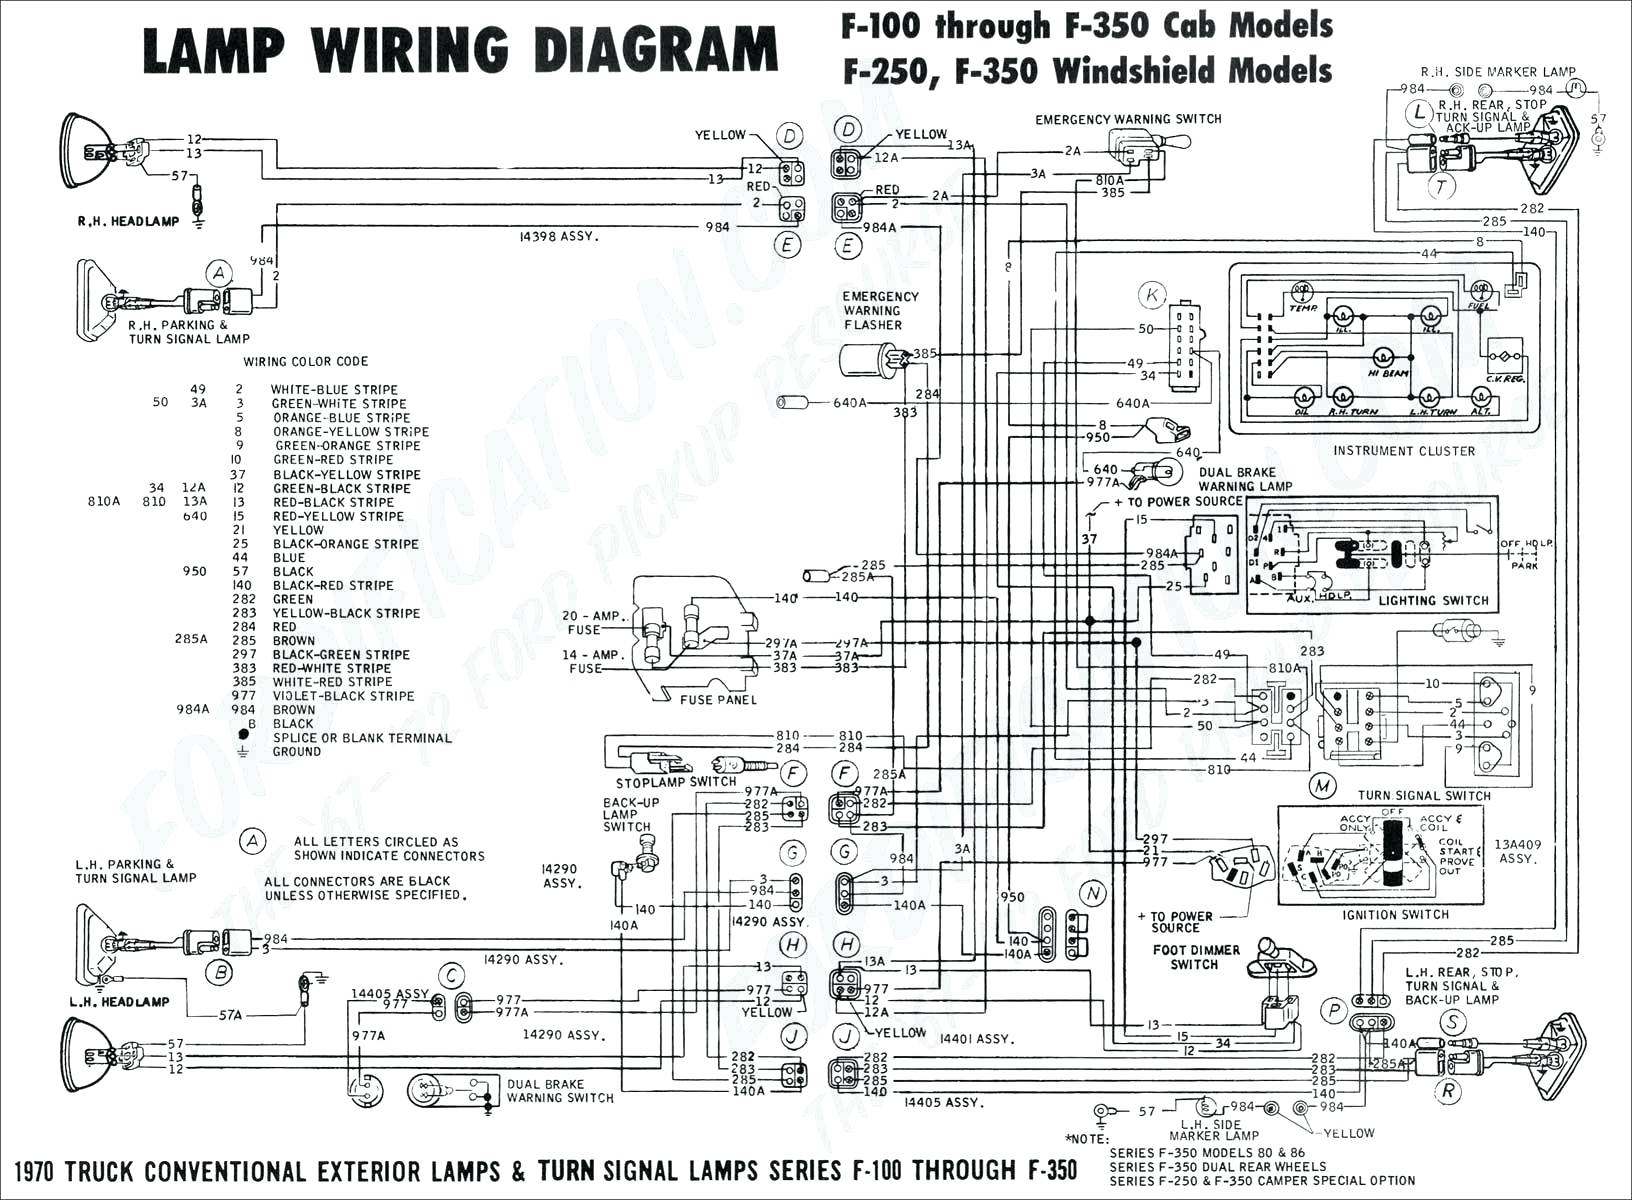 98 dodge ram trailer wiring diagram download 2001 dodge ram truck wiring diagram 2001 dodge ram 3500 wiring diagram #8